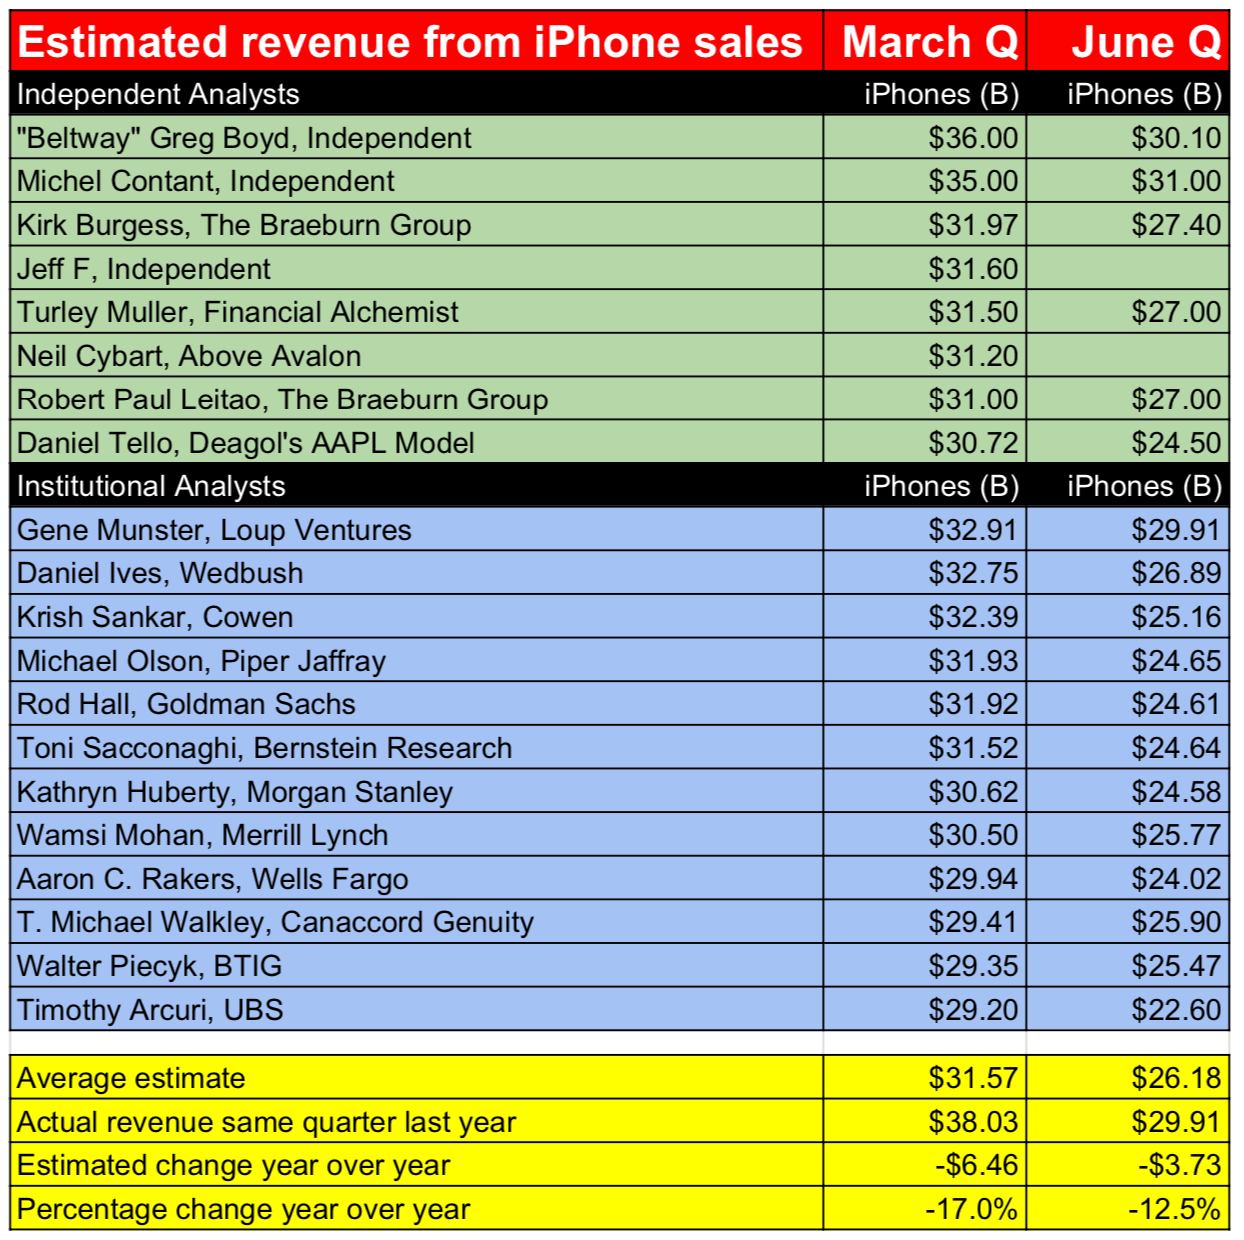 Exclusive Apple S Iphone Revs Down 17 In March Quarter 12 5 In